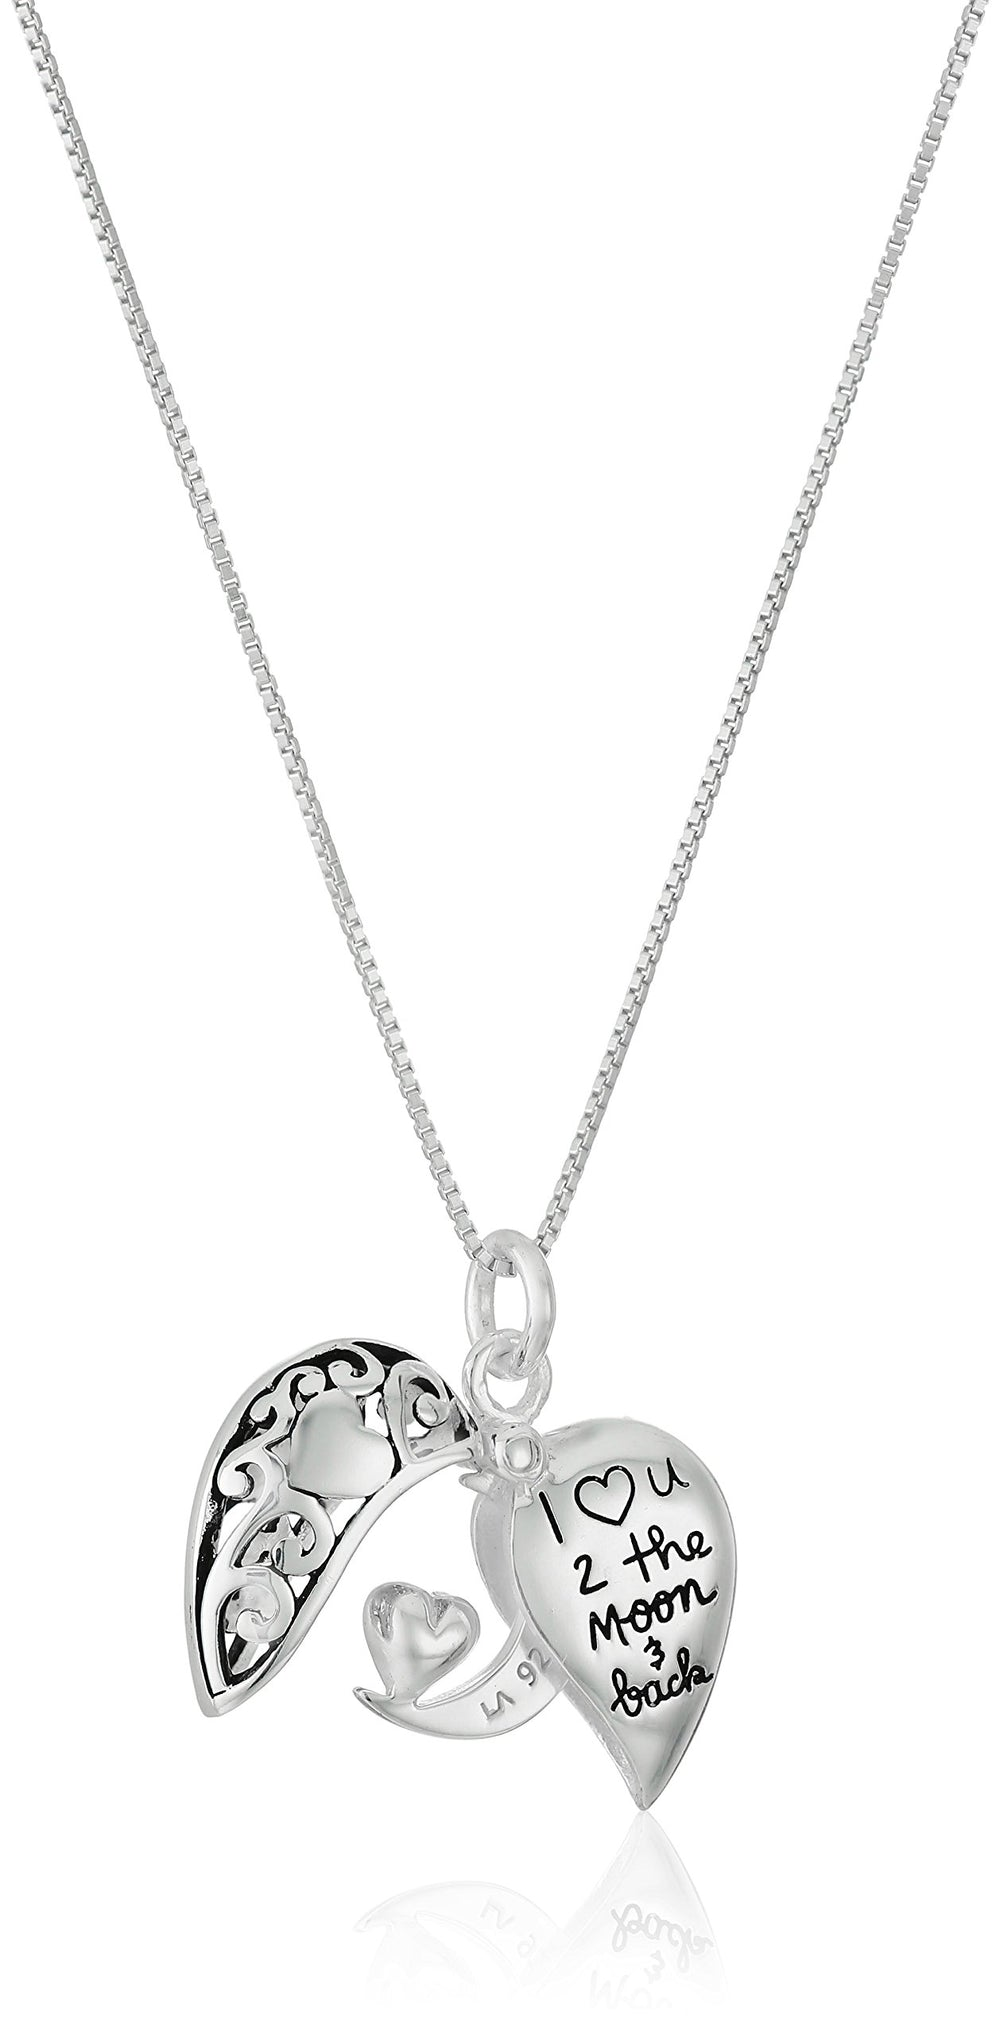 """I Love U 2 The Moon and Back"" Necklace gift - Shade & watches"